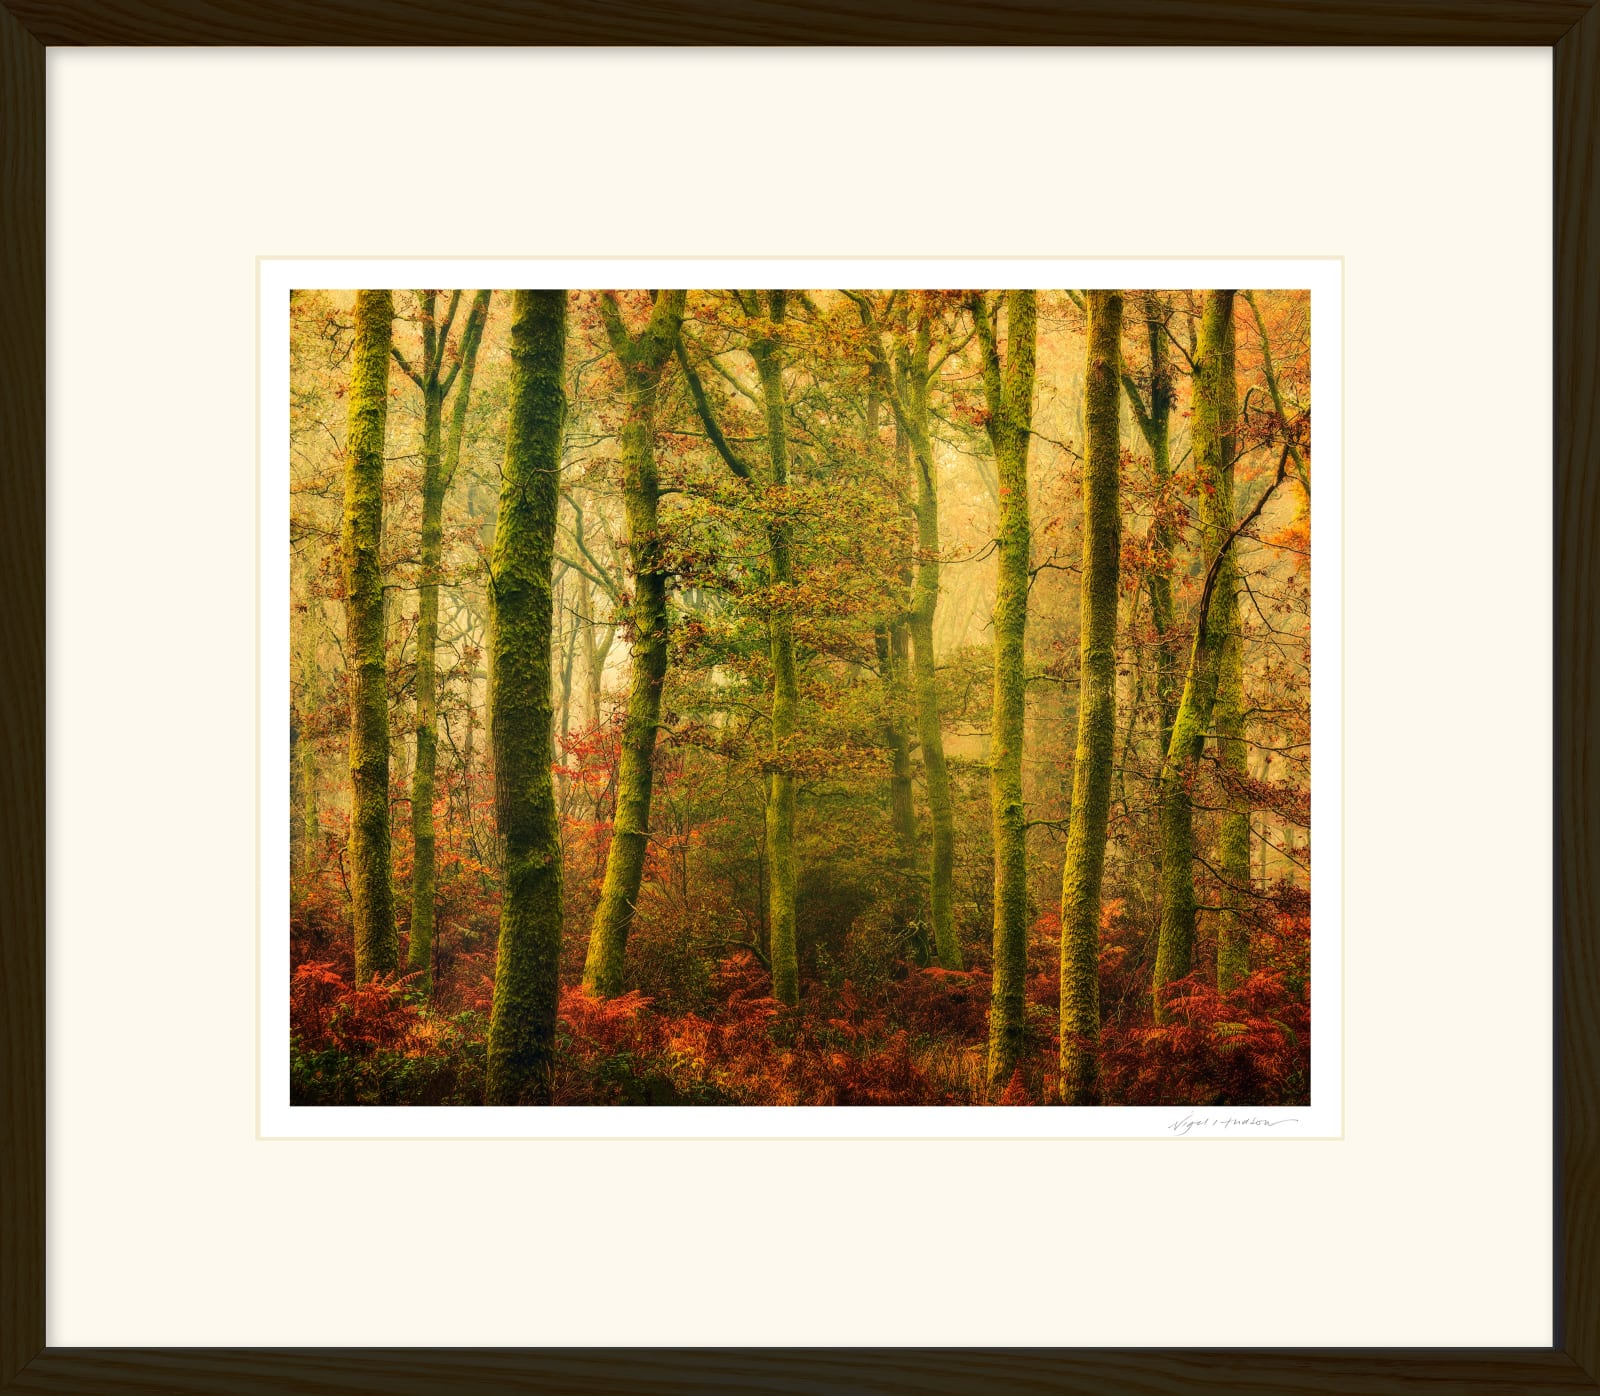 'CARPET OF GOLD' 16 x 20 inch print within a 22 x 26 inch Frame Printed on Platinum Etching Fine Art Archival Paper Matted and framed in a 2 cm oiled Walnut Cushion Frame under water white glass Signed and Editioned with a Certificate of Authenticity Available in three sizes ... Ready to Hang Prices from £275.00 Price includes delivery by DPD Courier to your front door